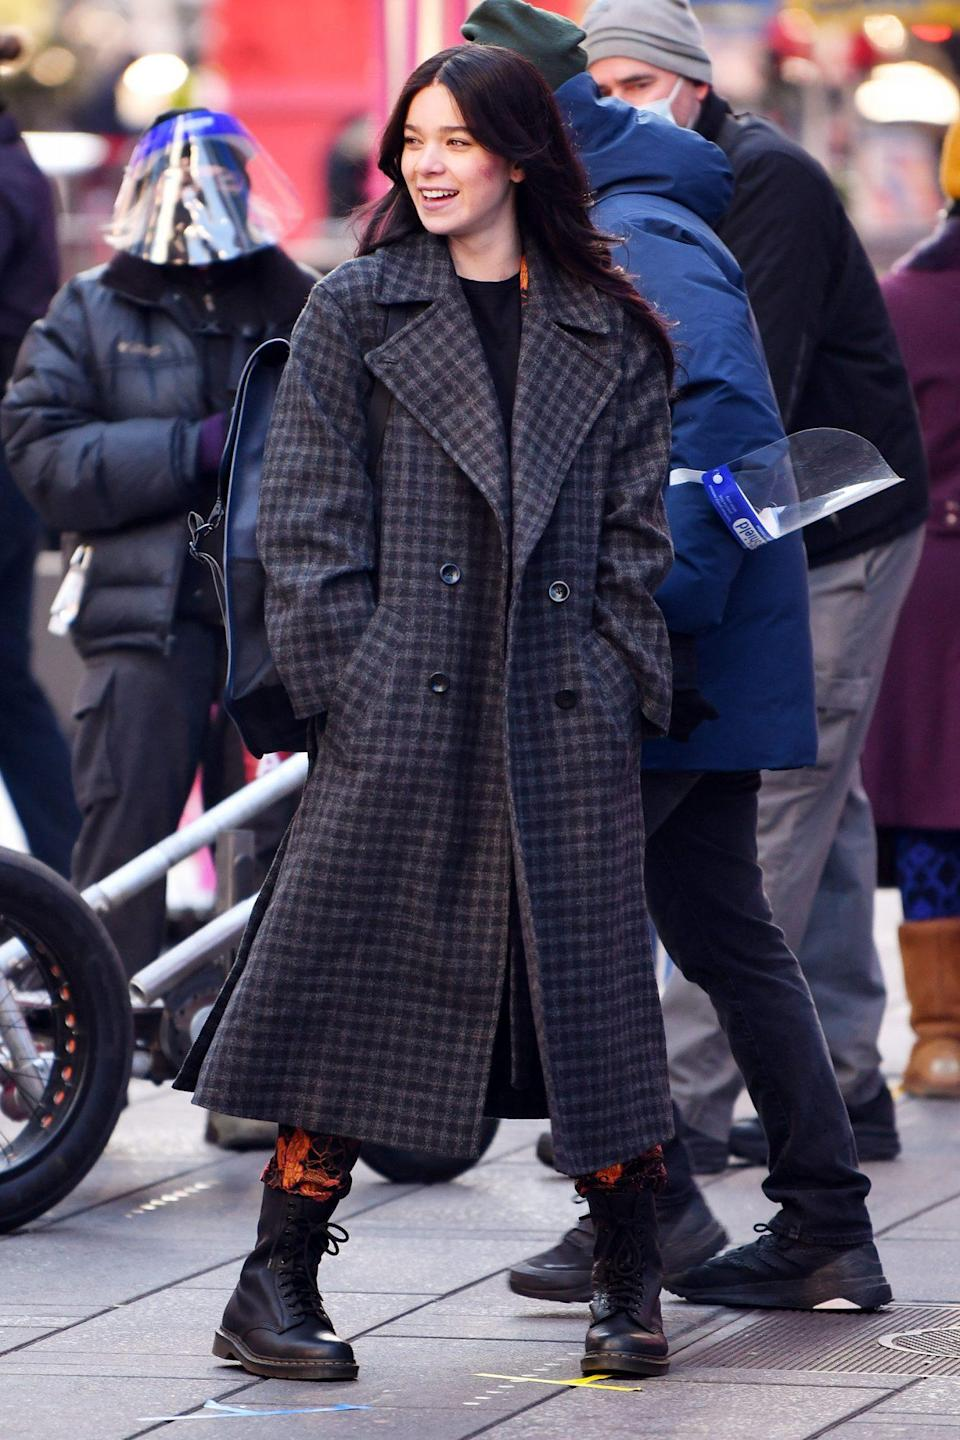 <p>Hailee Steinfeld films in Times Square, N.Y.C. on Monday for <em>Hawkeye</em>. </p>